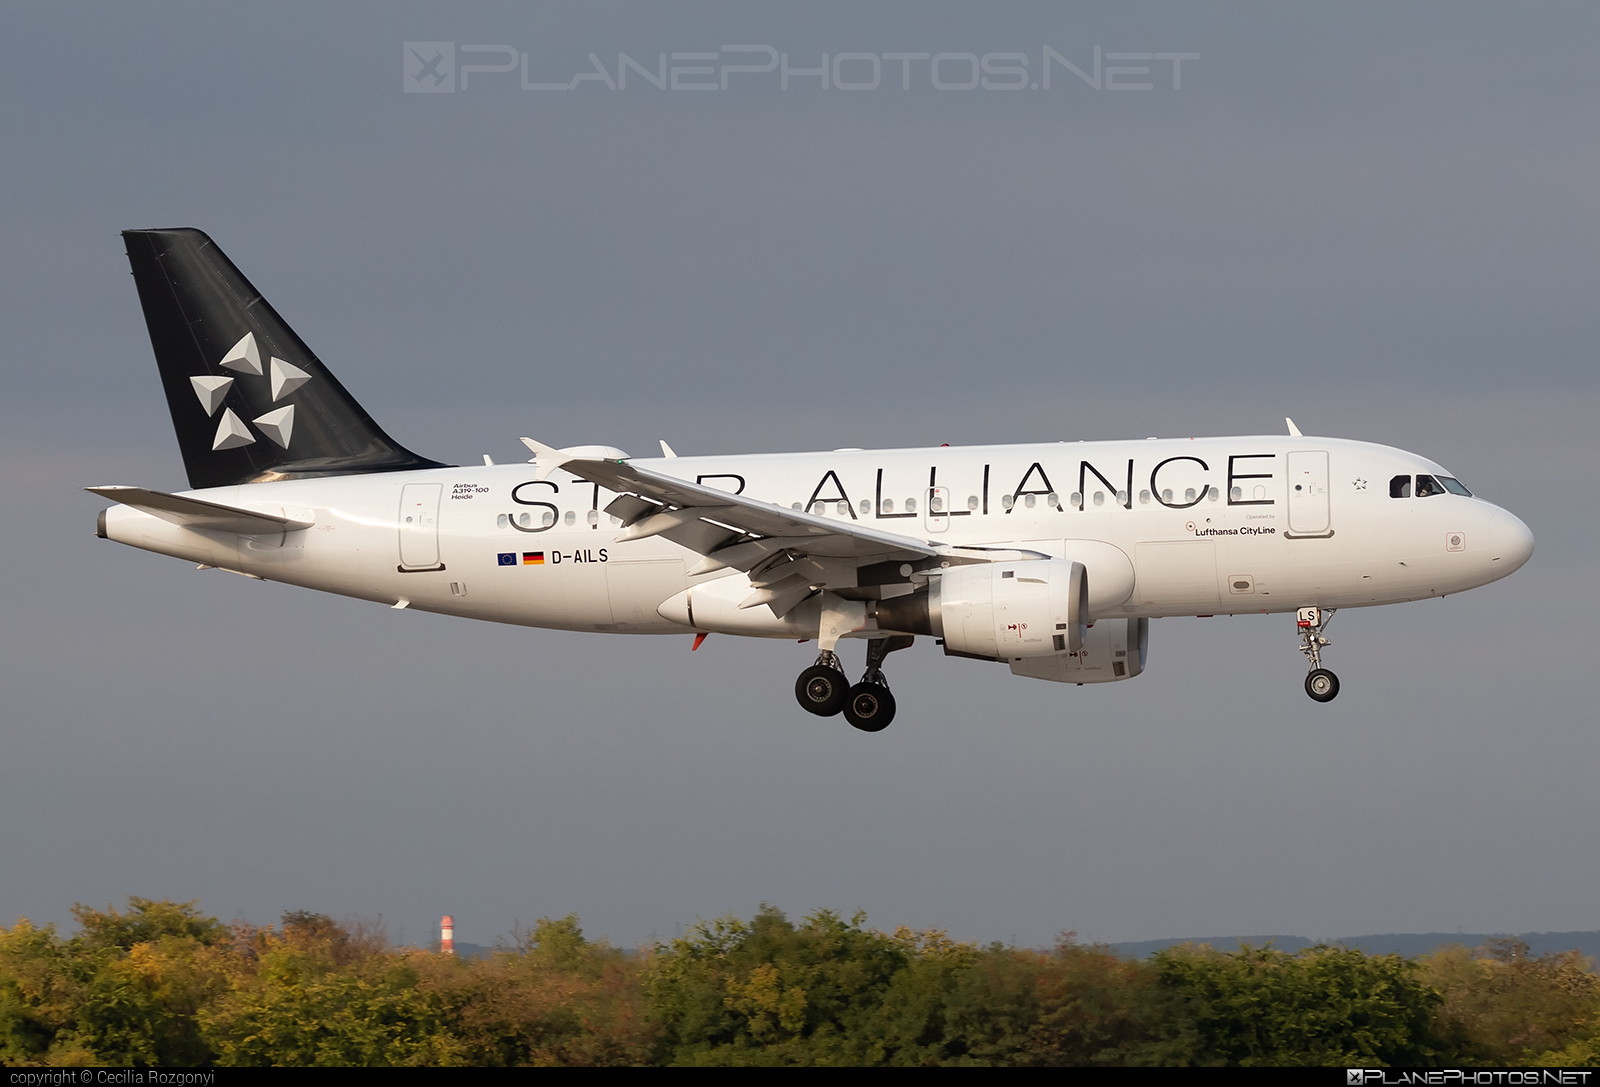 Airbus A319-114 - D-AILS operated by Lufthansa #Budapest #D-AILS #FerencLisztIntl #Heide #SpecialLiveries #StarAlliance #a319 #a320family #airbus #airbus319 #lufthansa